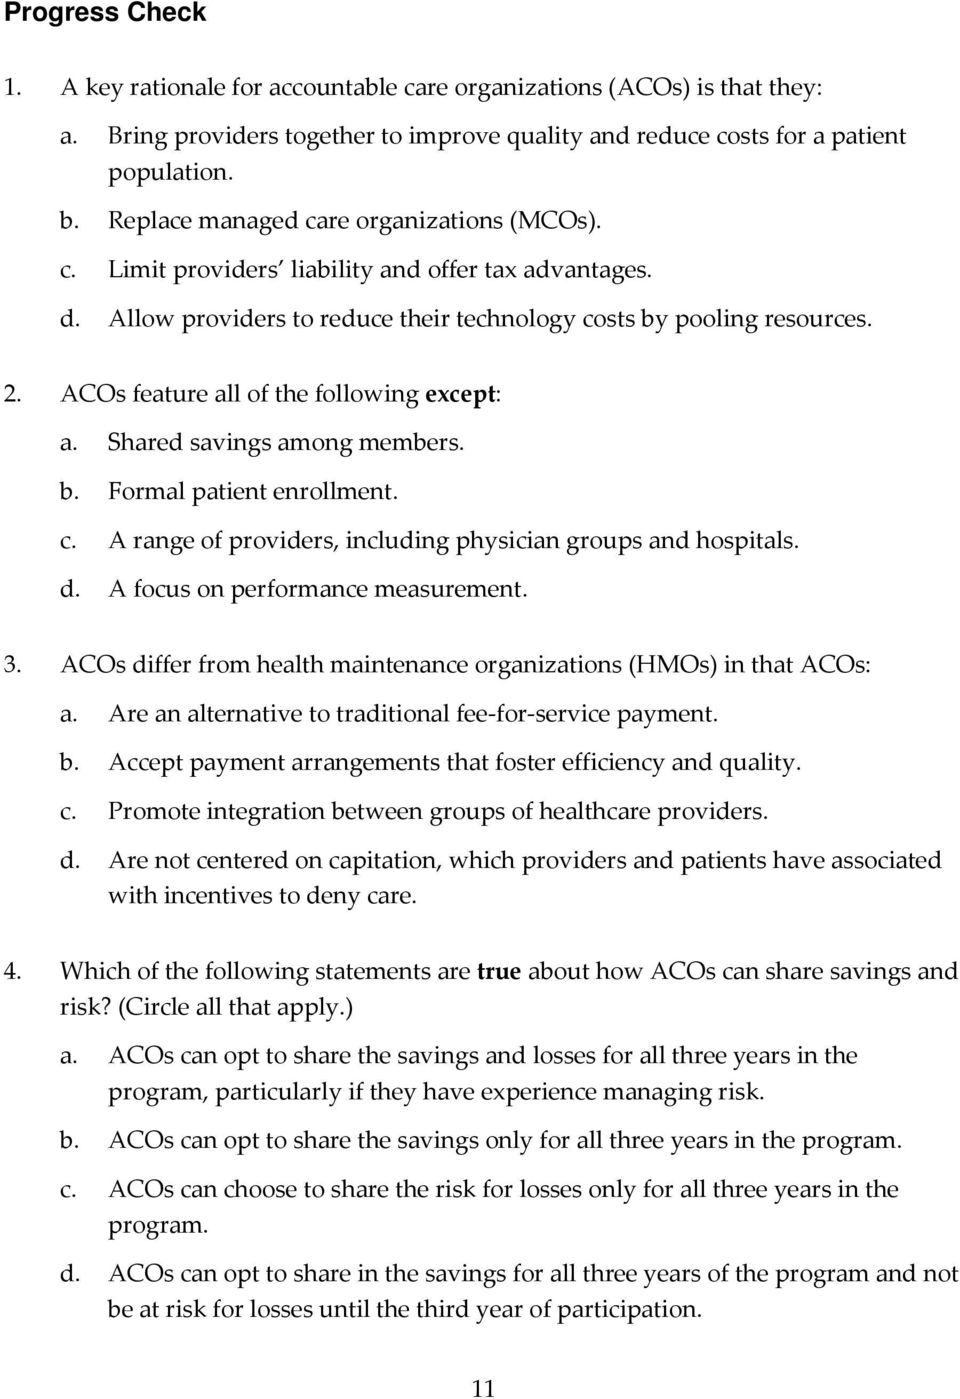 ACOs feature all of the following except: a. Shared savings among members. b. Formal patient enrollment. c. A range of providers, including physician groups and hospitals. d.